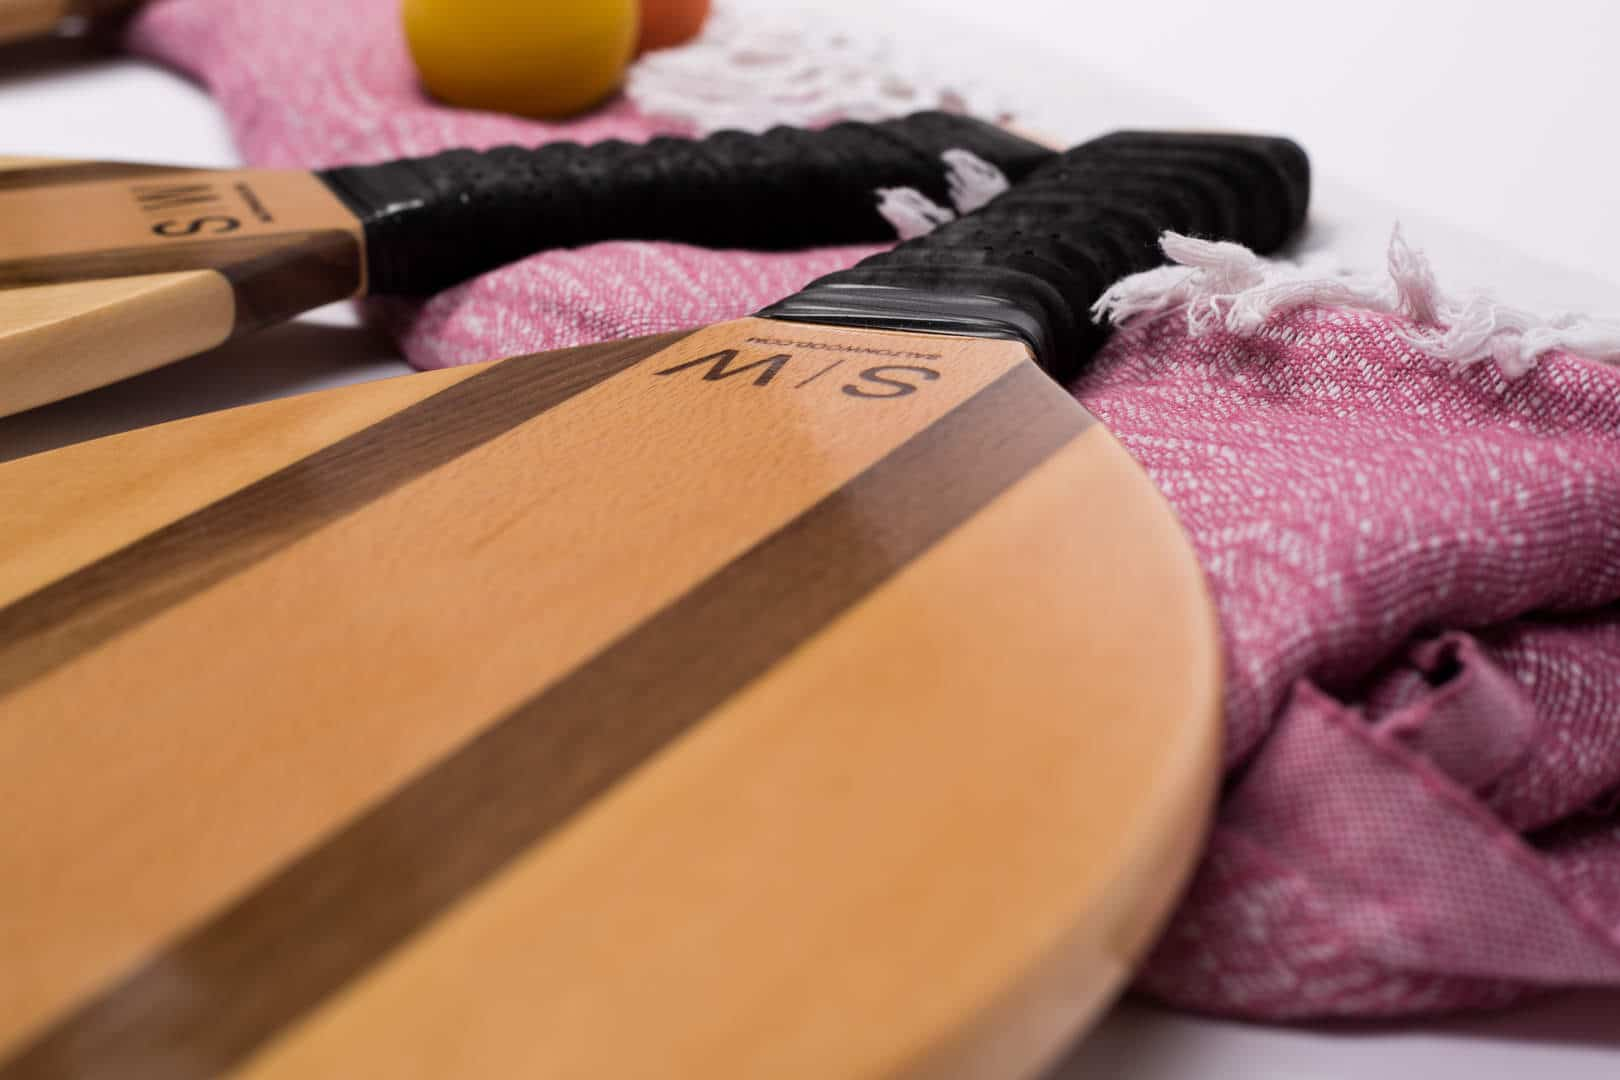 Paddle ball collection by Salt on Wood